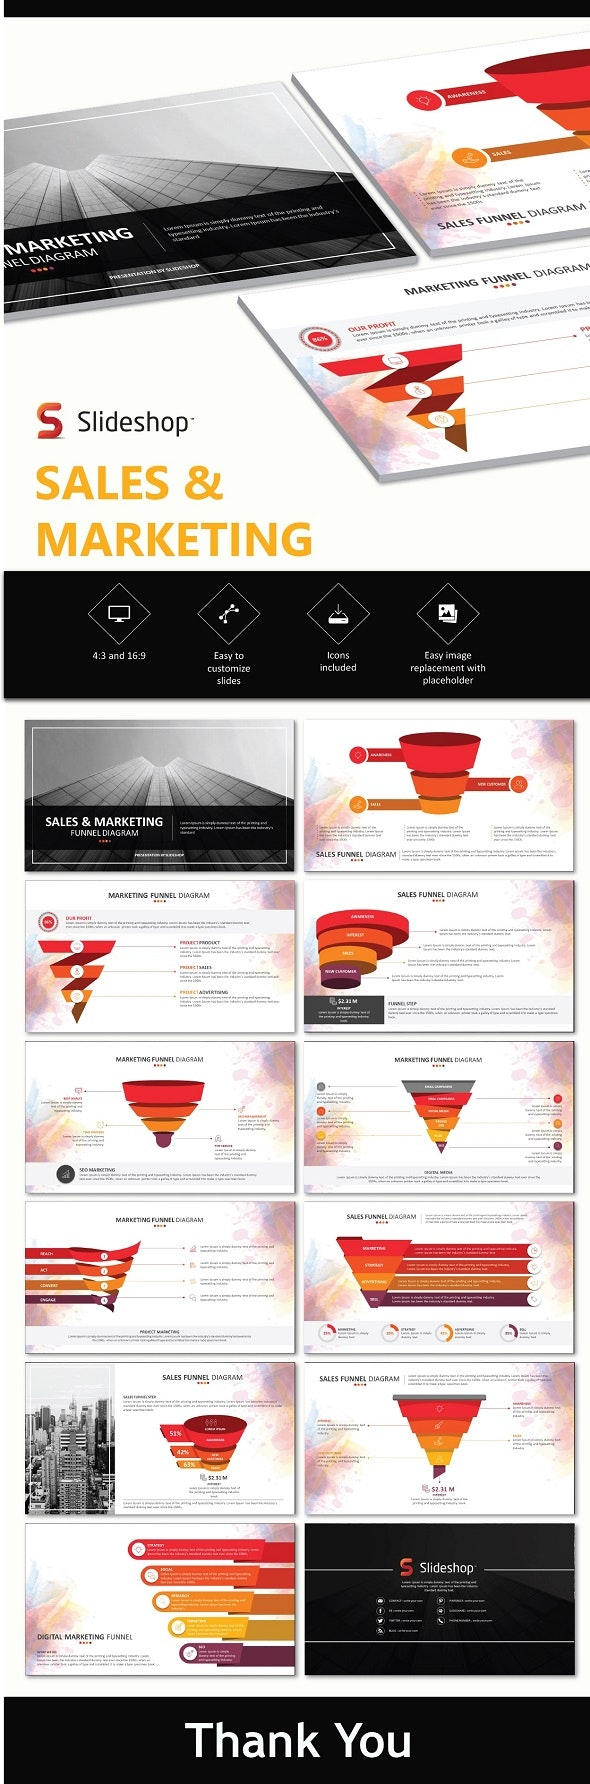 Sales and Marketing Funnels - PowerPoint Templates Presentation Templates